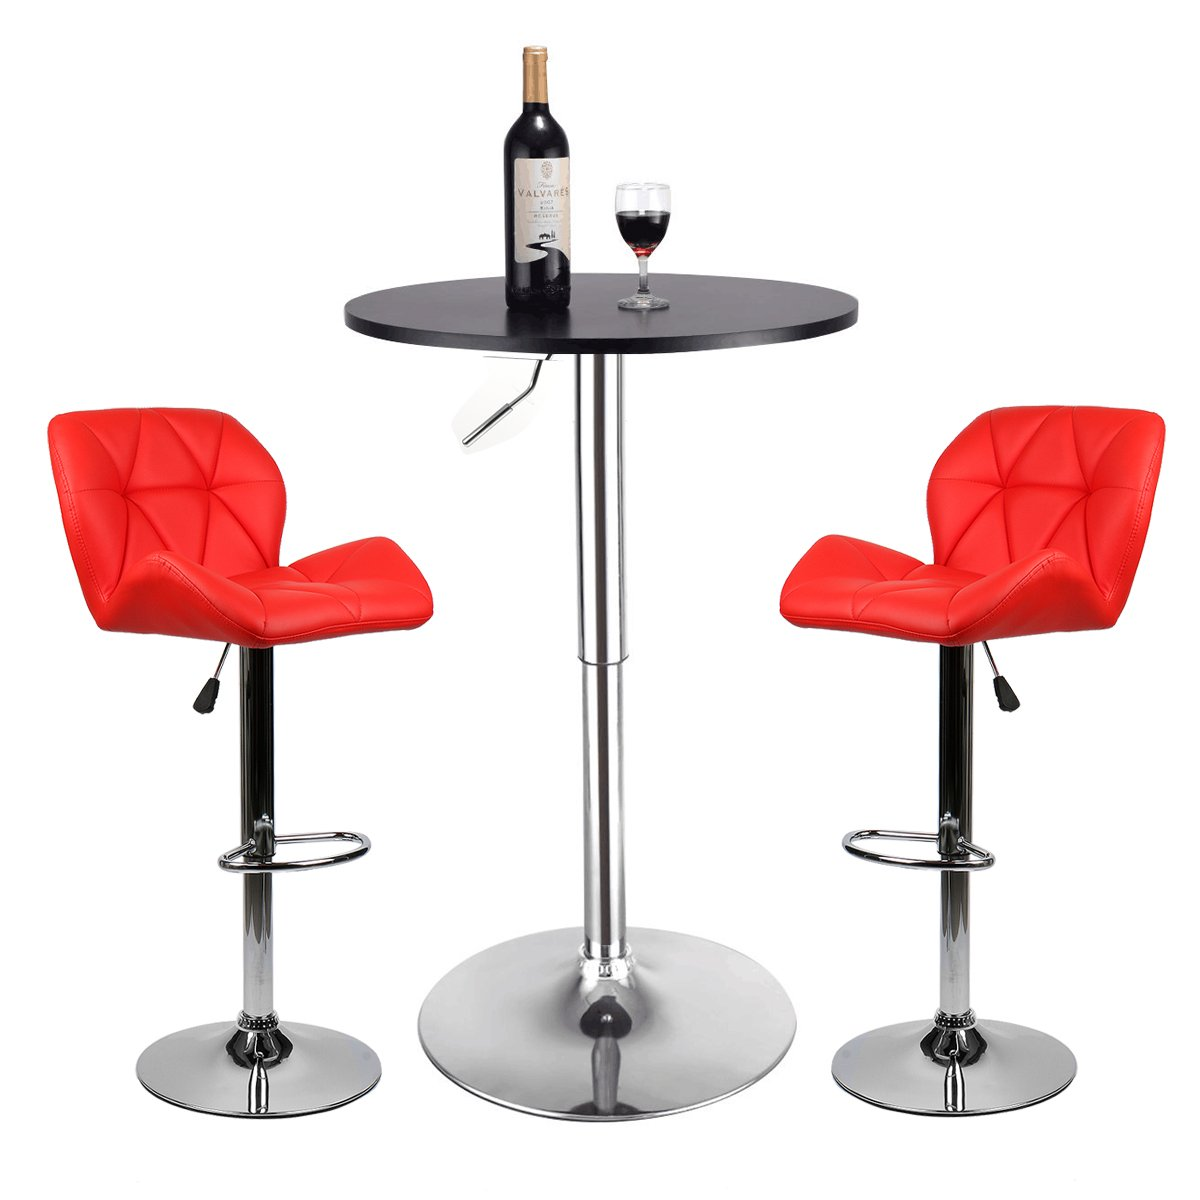 YOURLITEAMZ Bar Table Set of 3 – Adjustable Round Table and 2 Swivel Pub Stools for Home Kitchen Bistro, Bars Wine Cabinets (Set 5)